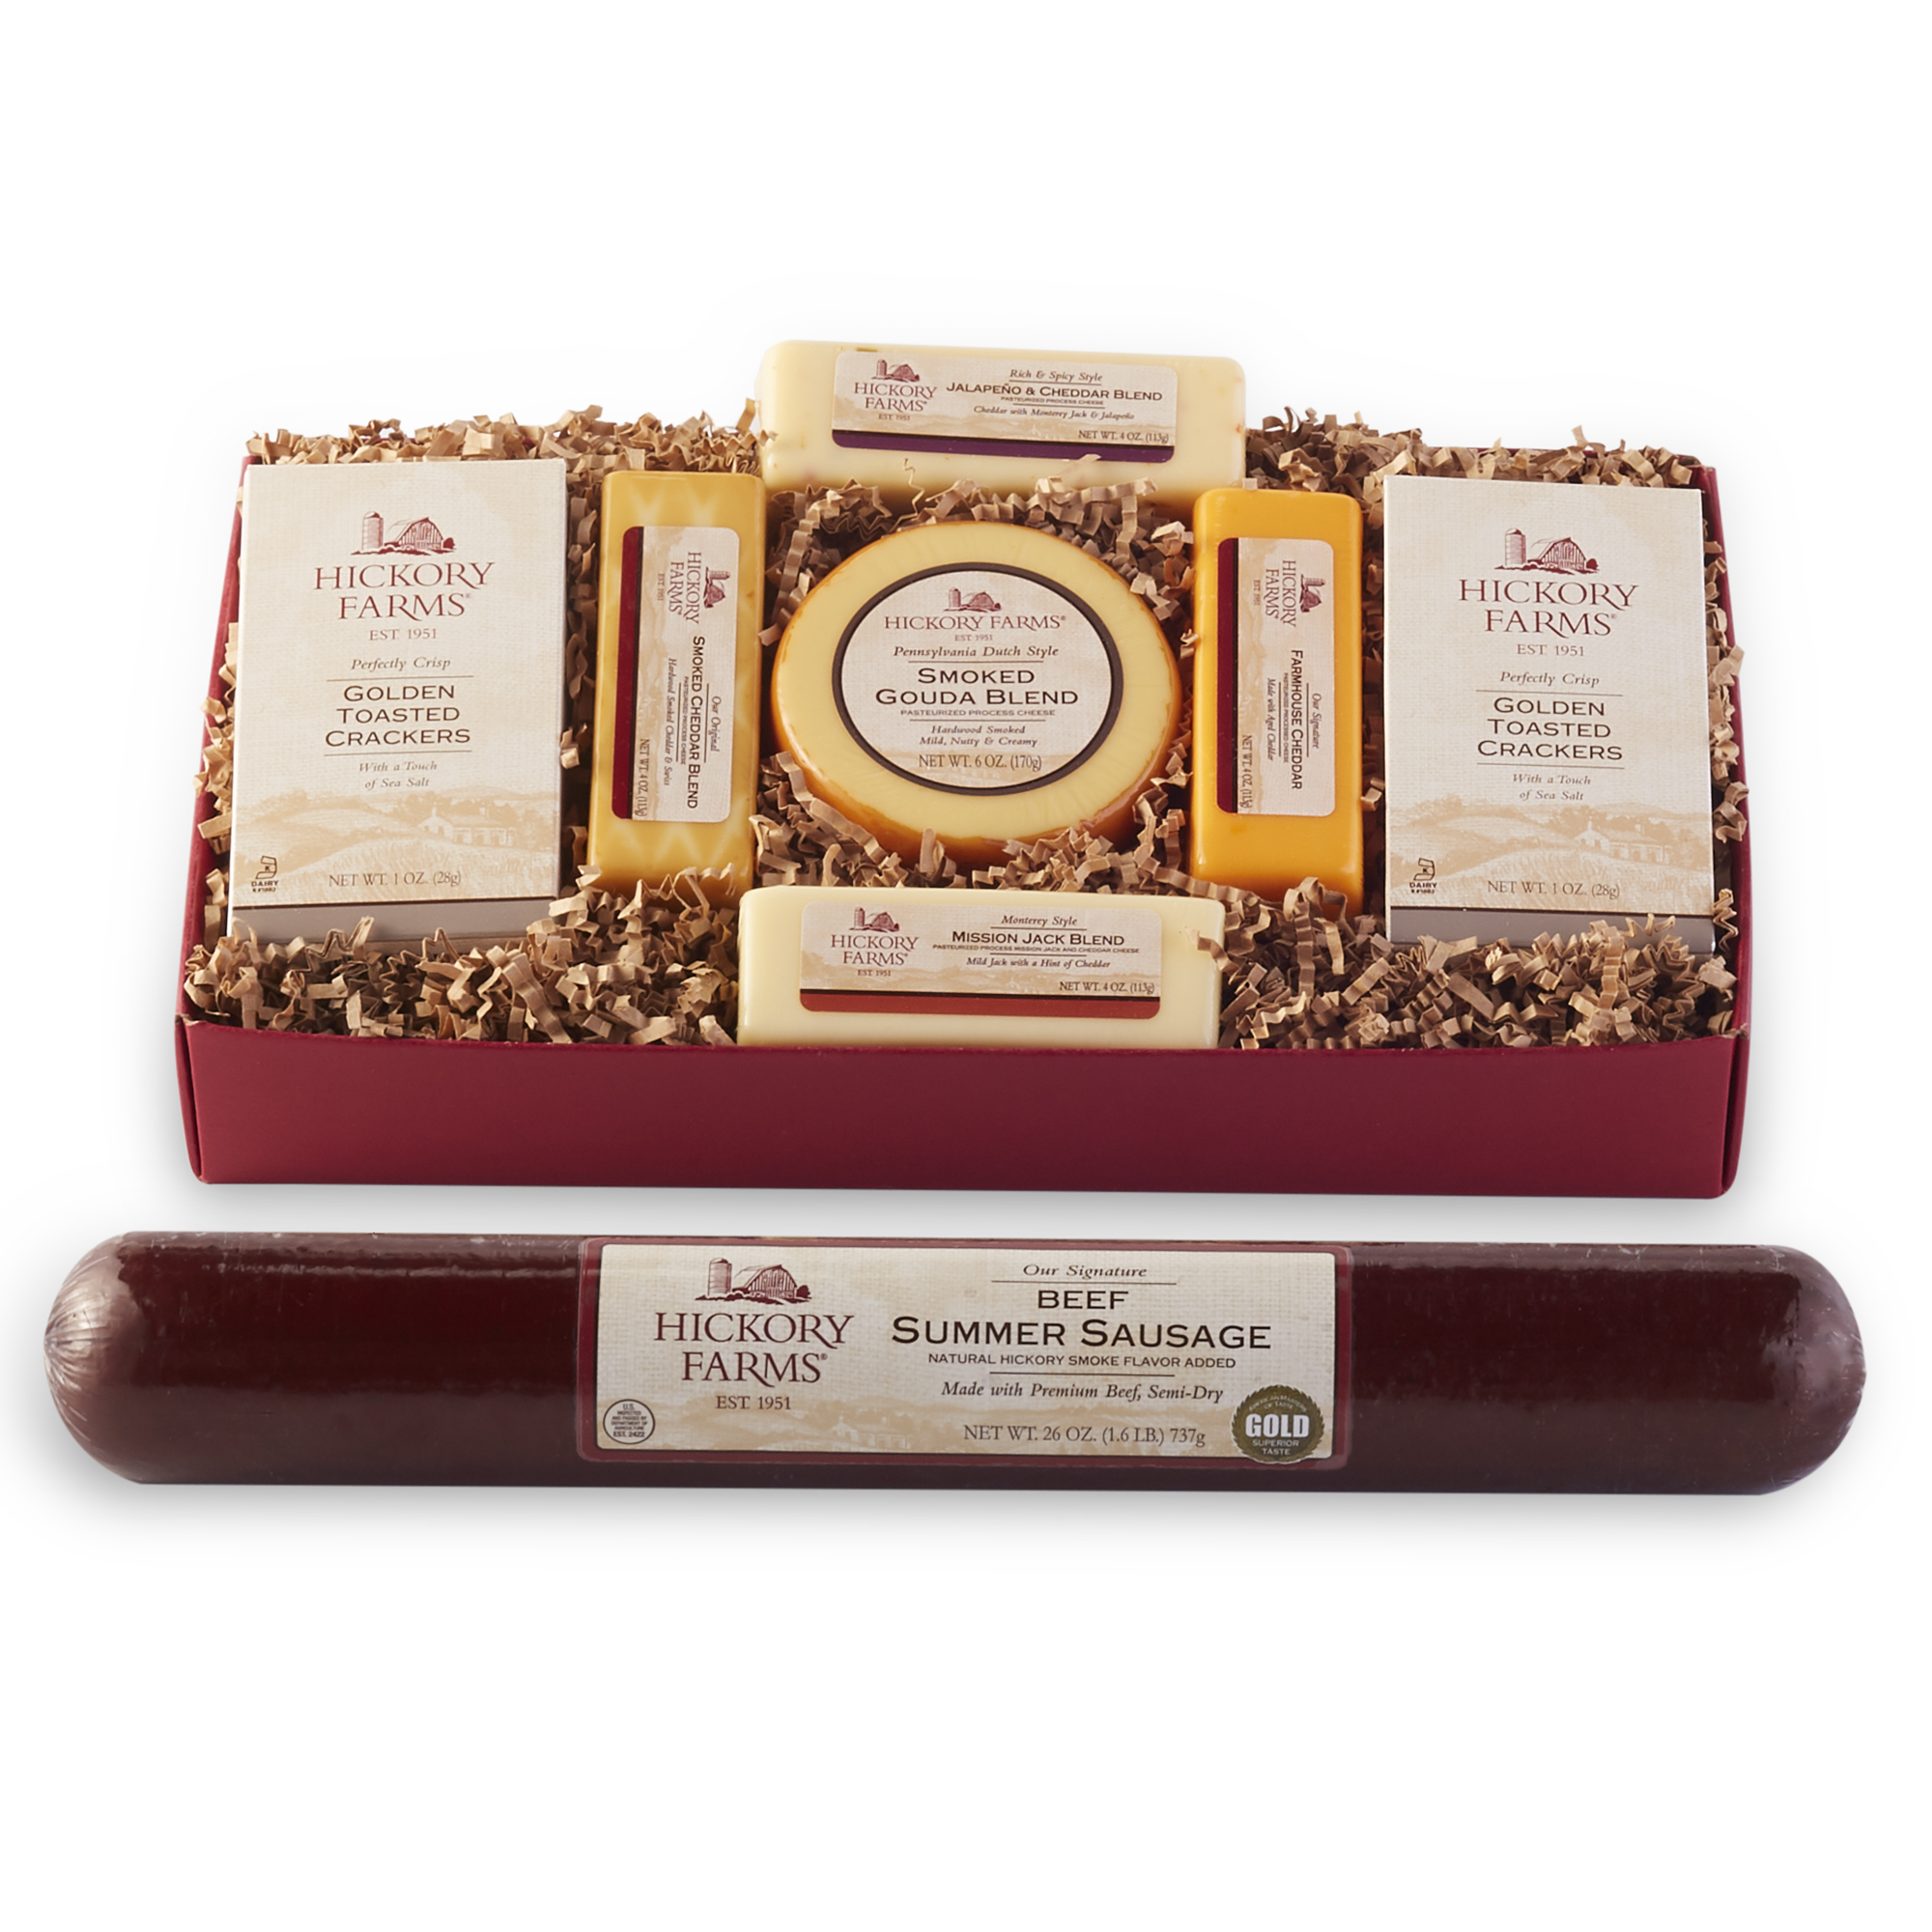 Gift box includes 26 oz. beef summer sausage, a variety of cheese, and golden toasted crackers